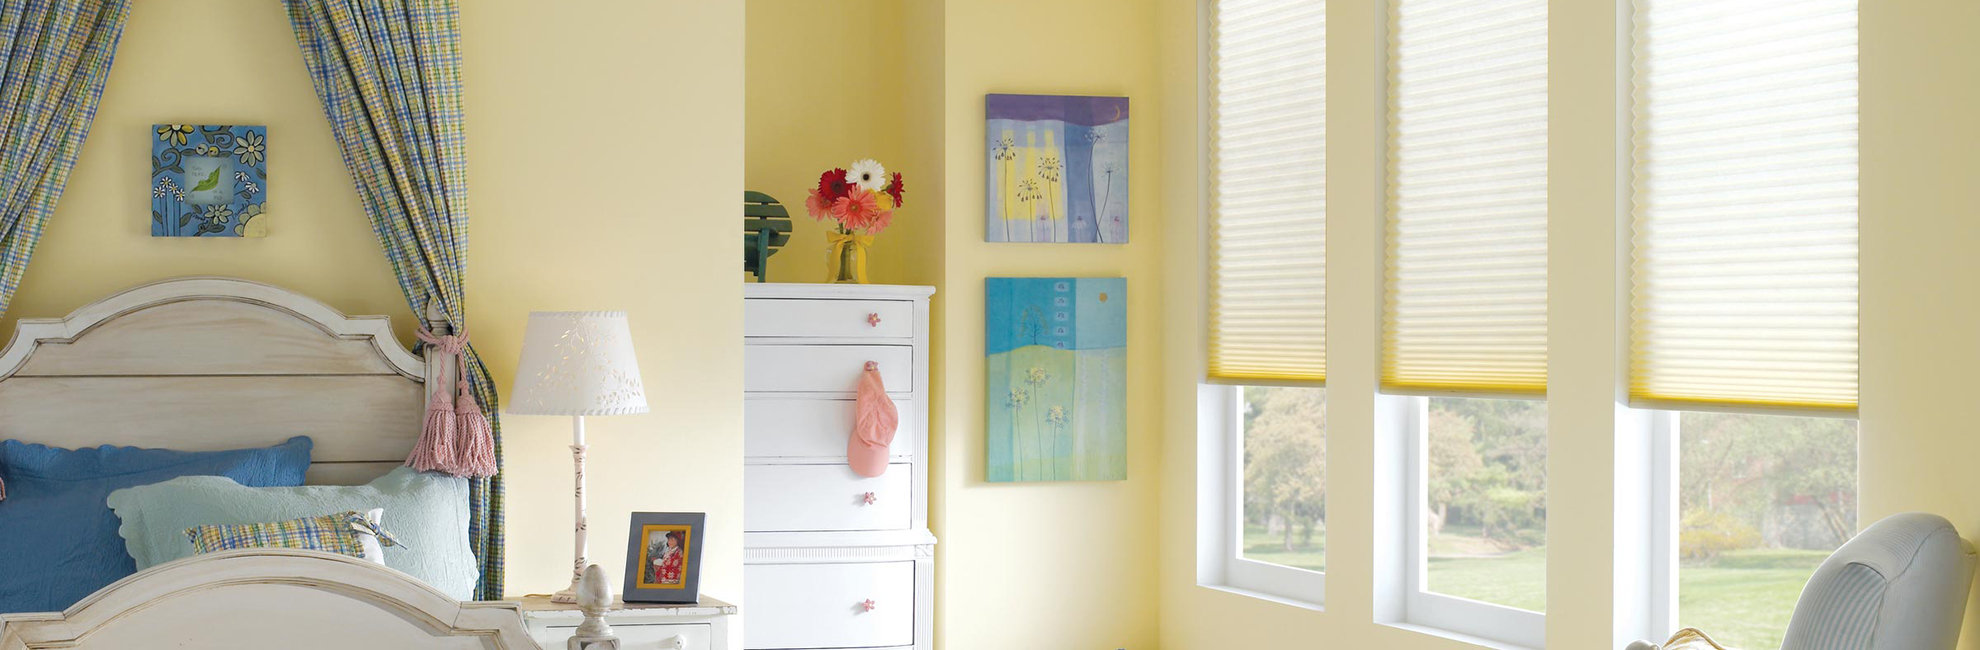 yellow_room_blinds_honeycomb